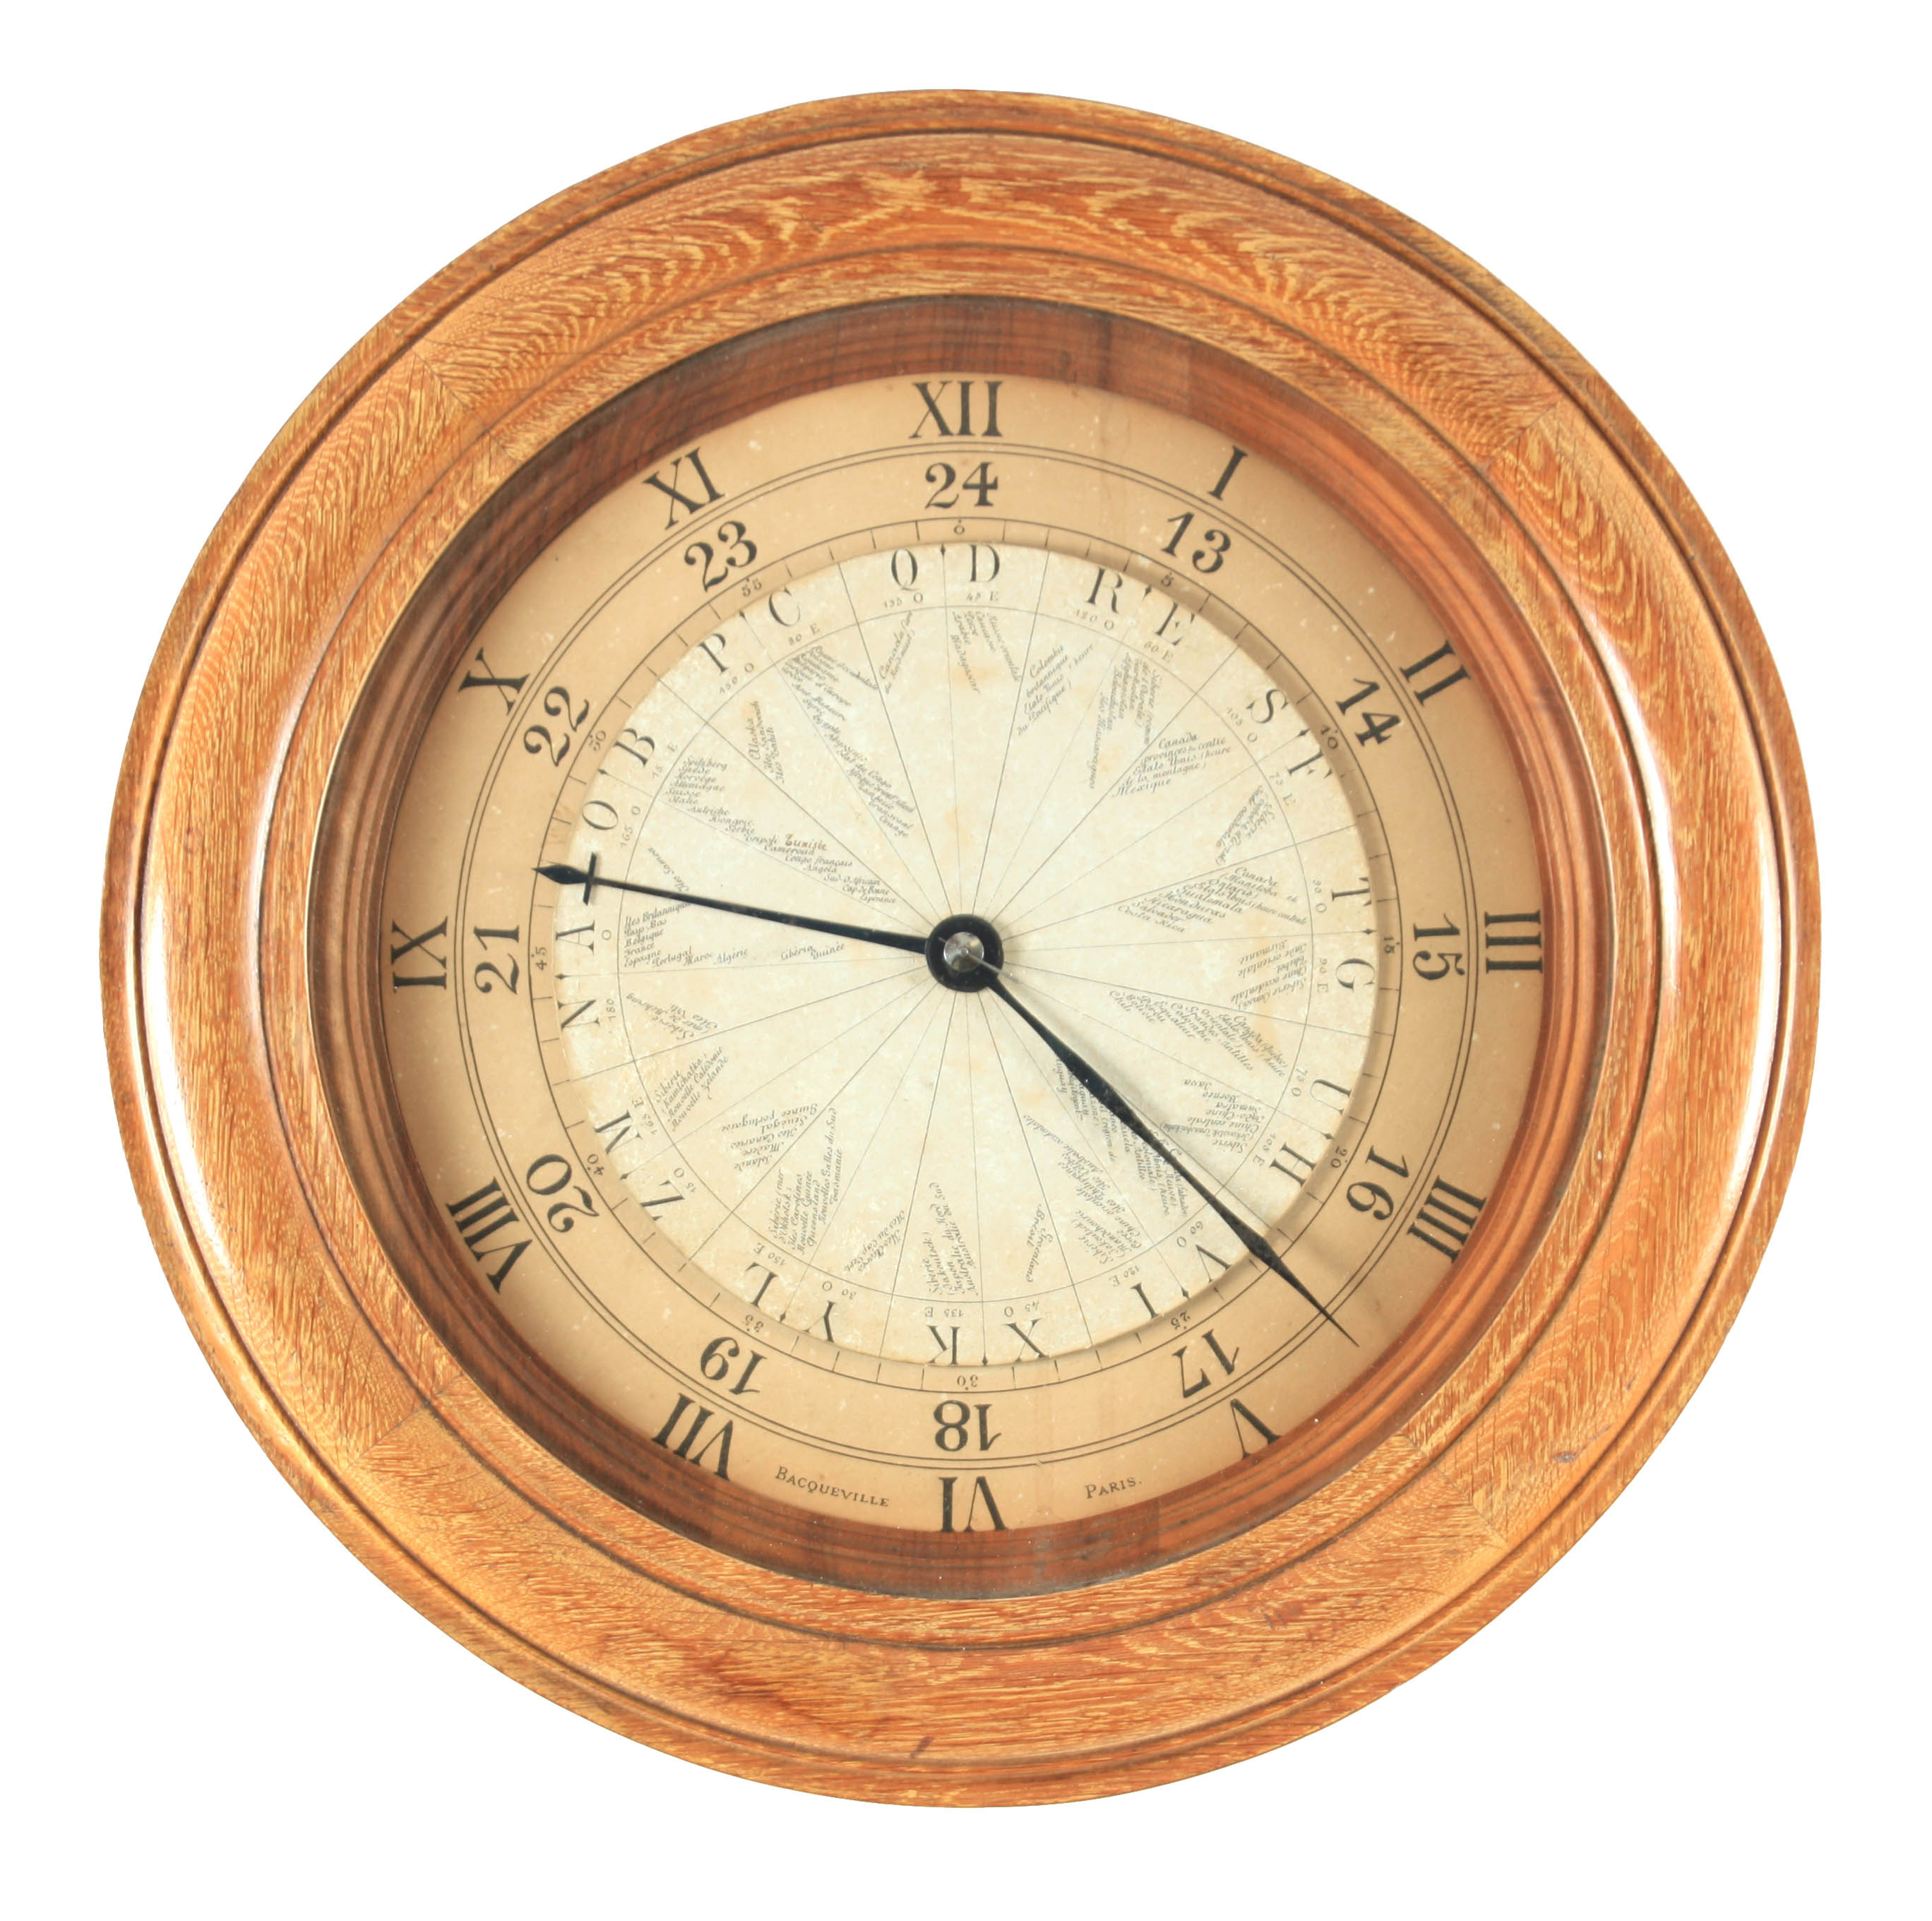 BACQUEVILLE, PARIS A UNIQUE LATE 19TH CENTURY LIMED OAK AND WALNUT WORLD TIME CLOCK the case with